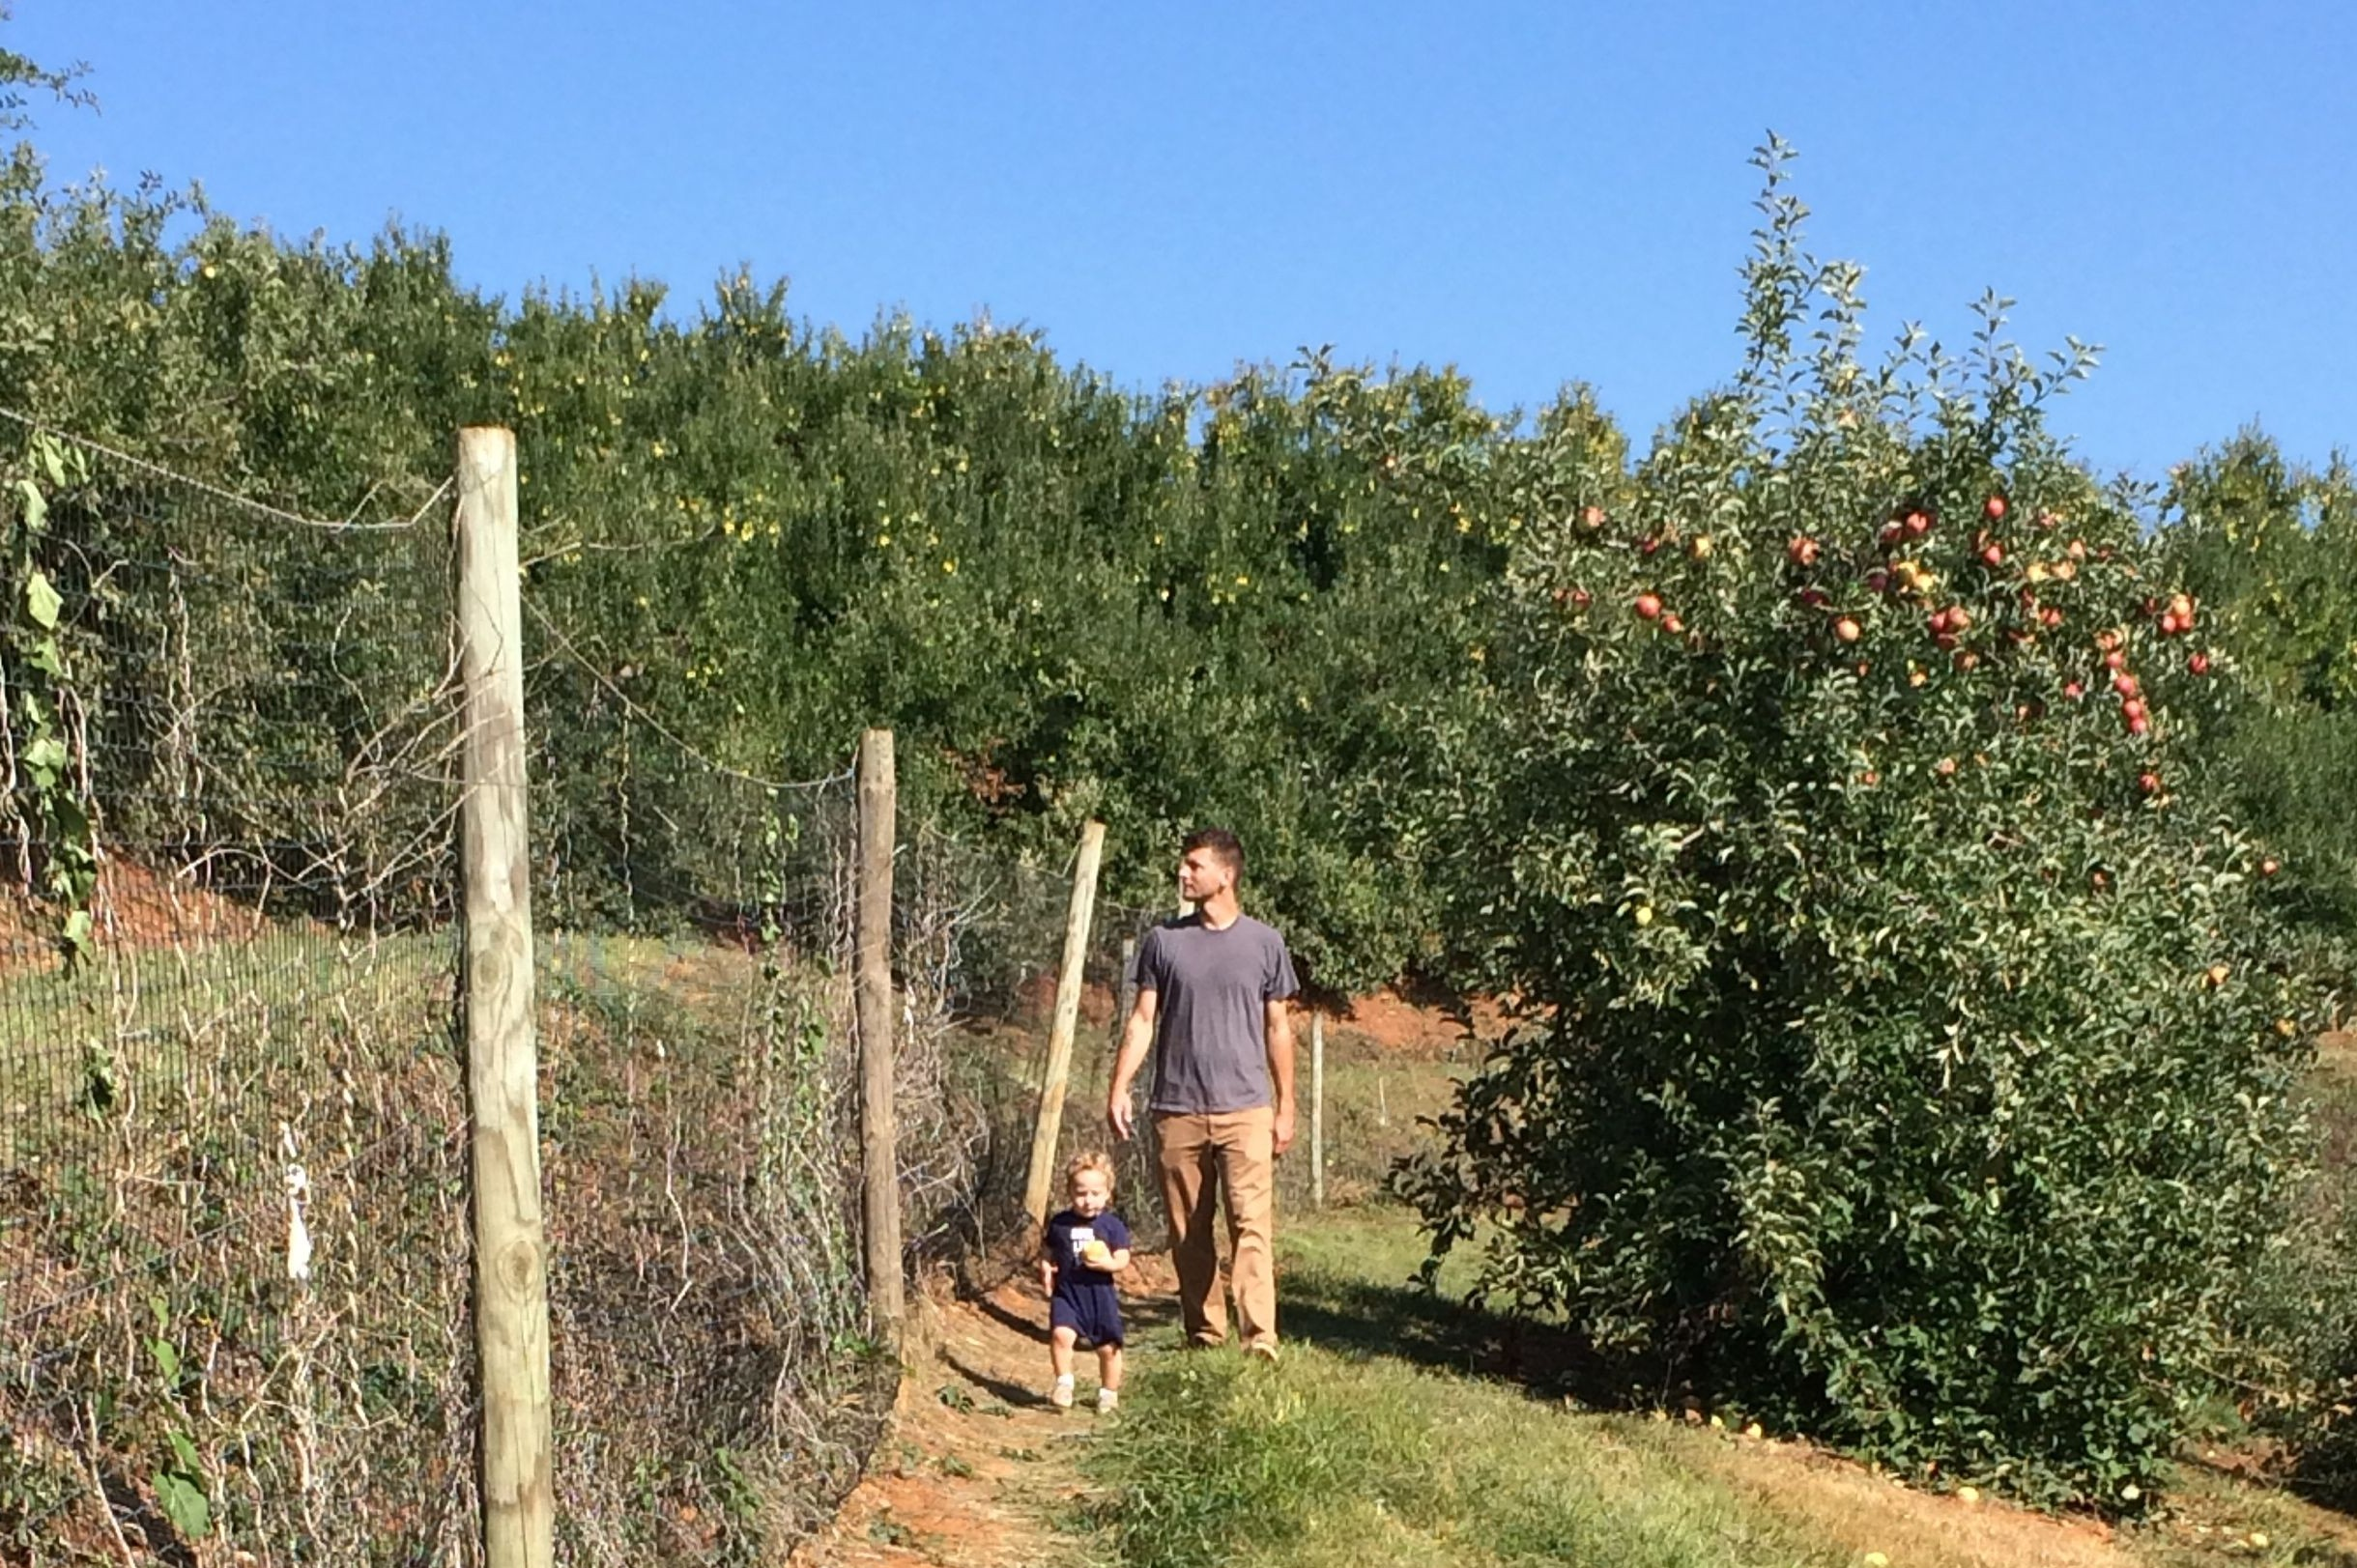 apple orchard quality time with family